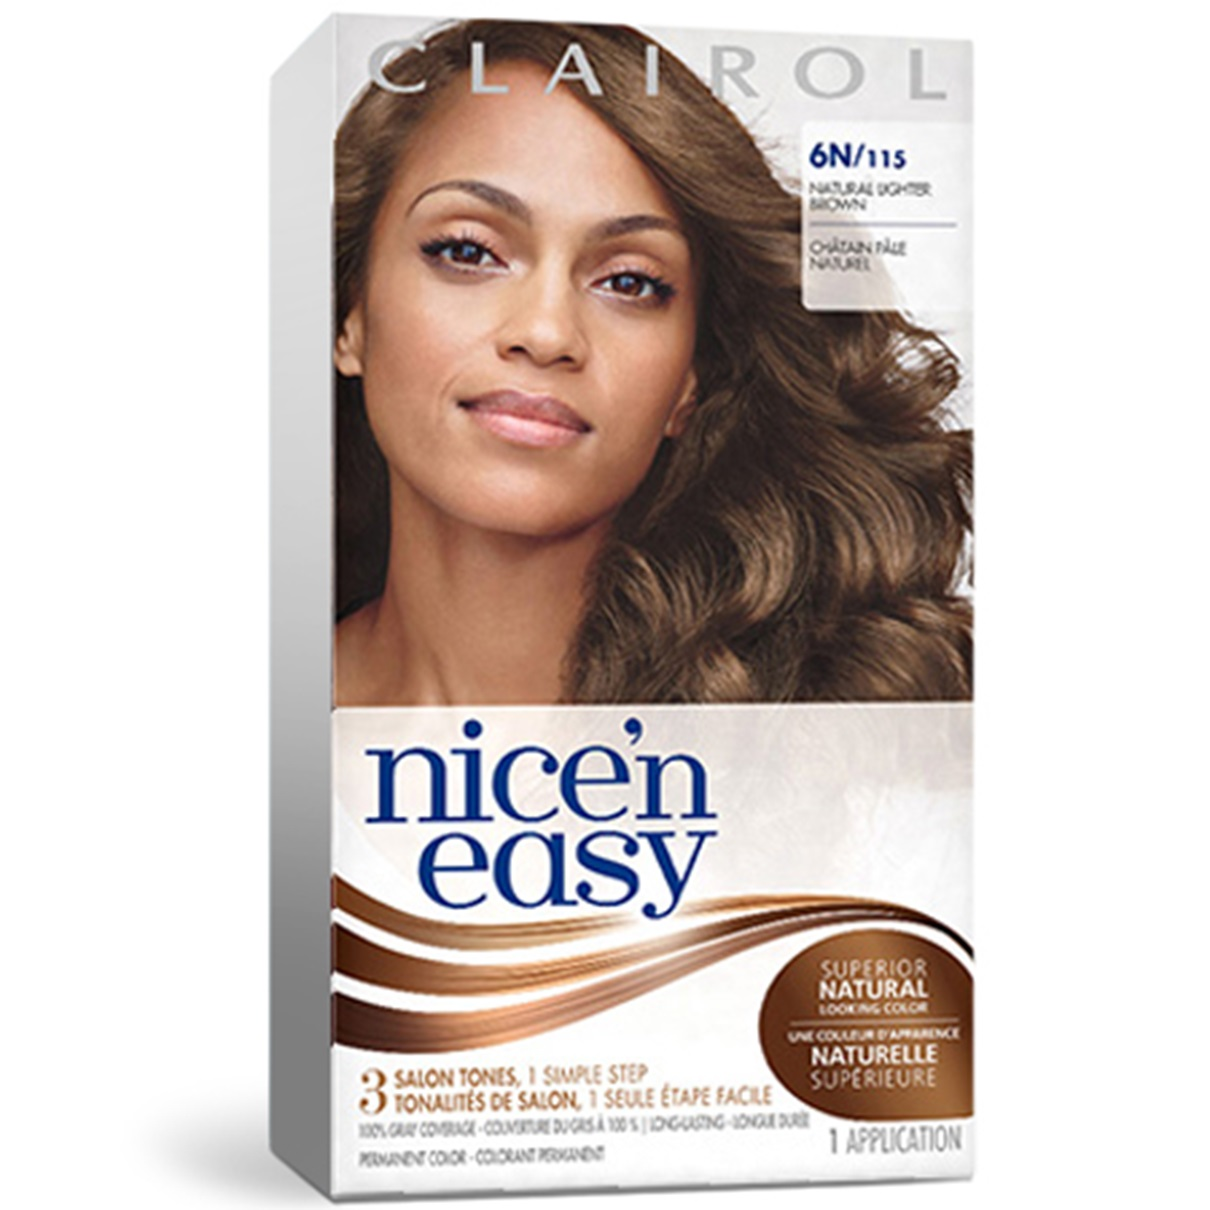 Swell Common Hair Color Questions Answered Clairol Hairstyles For Women Draintrainus